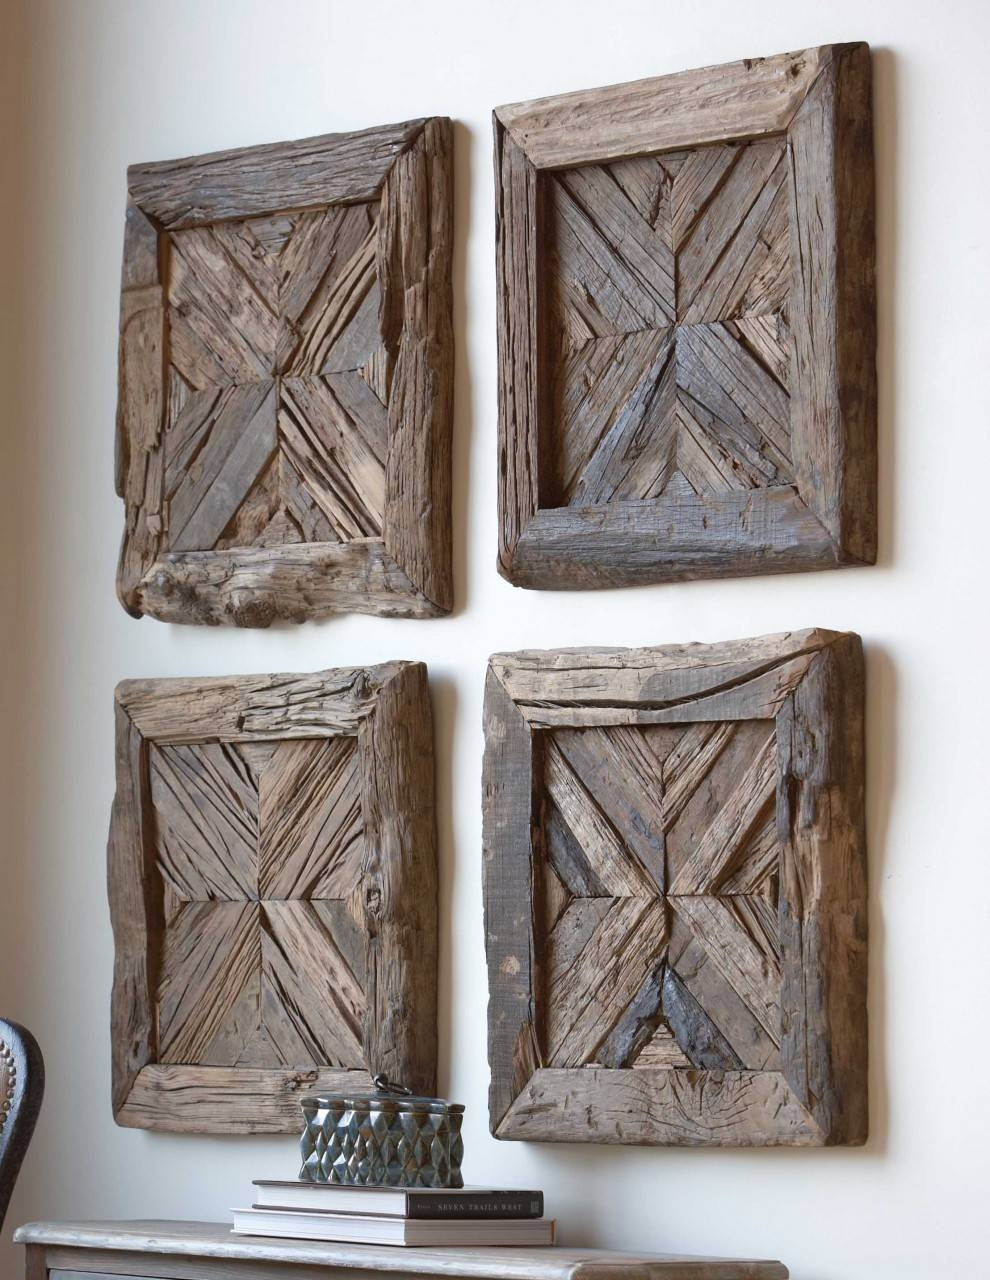 Rustic Wood Wall Art Ideas • Recous In 2017 Wood Panel Wall Art (Gallery 6 of 20)